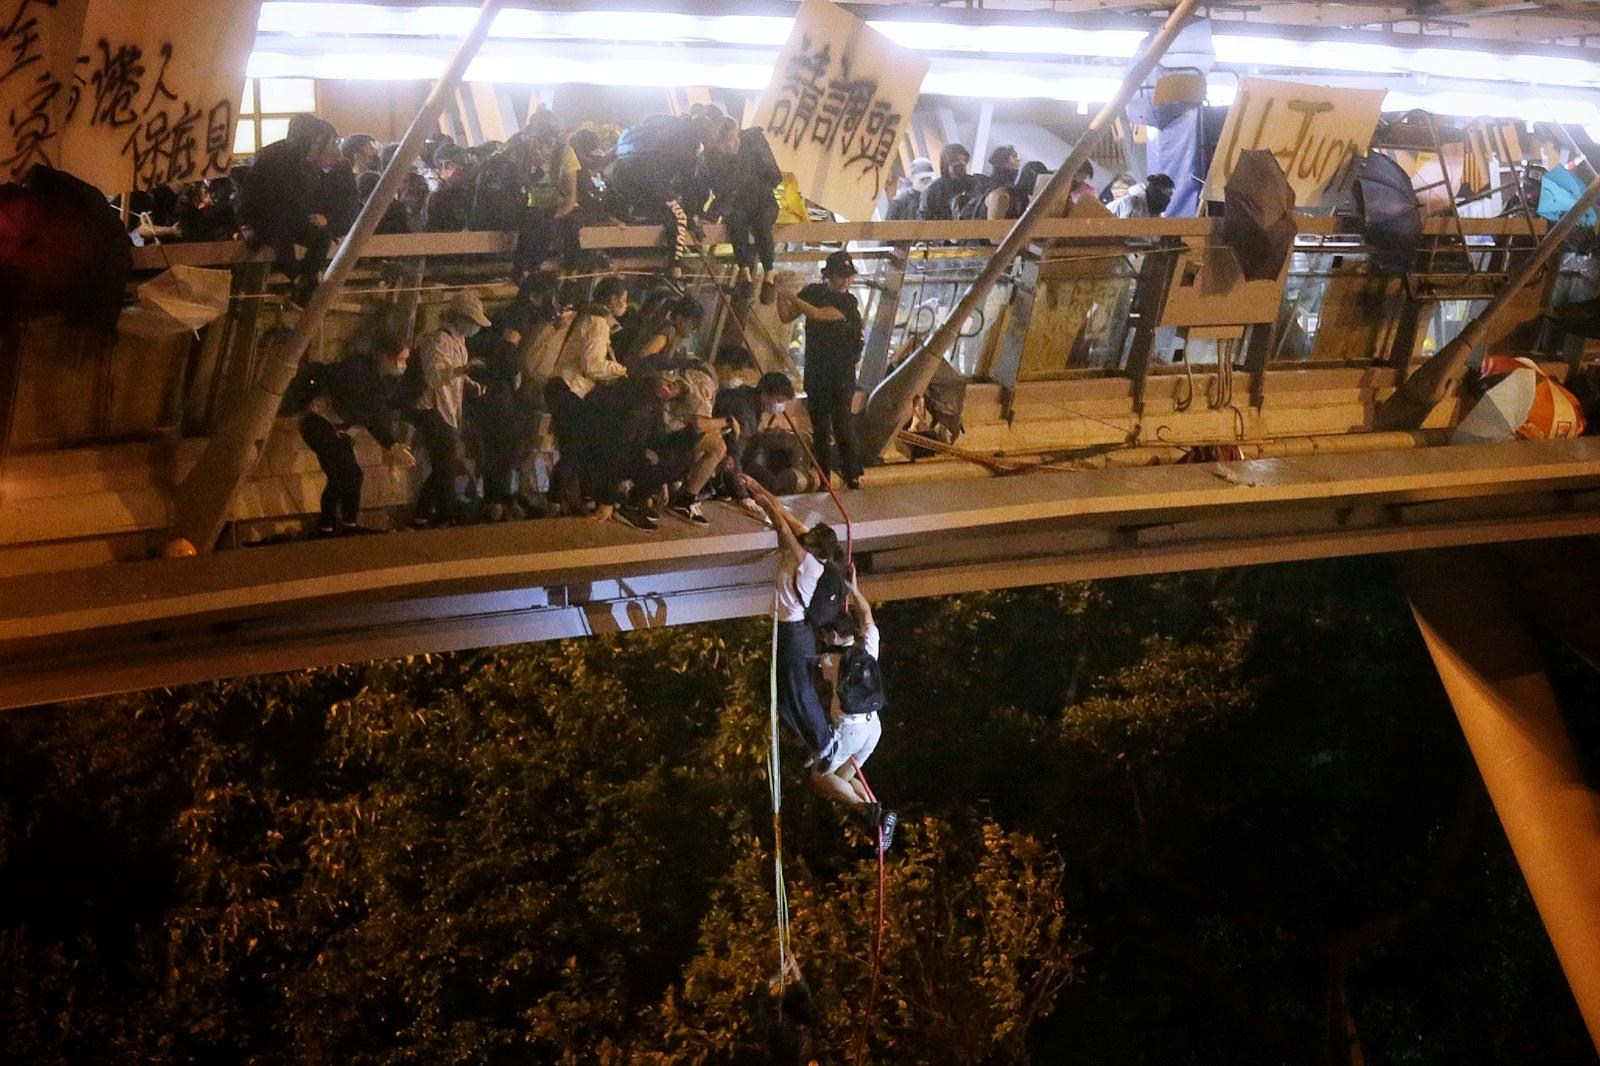 At Hong Kong university, a daring escape but fears of bloodshed